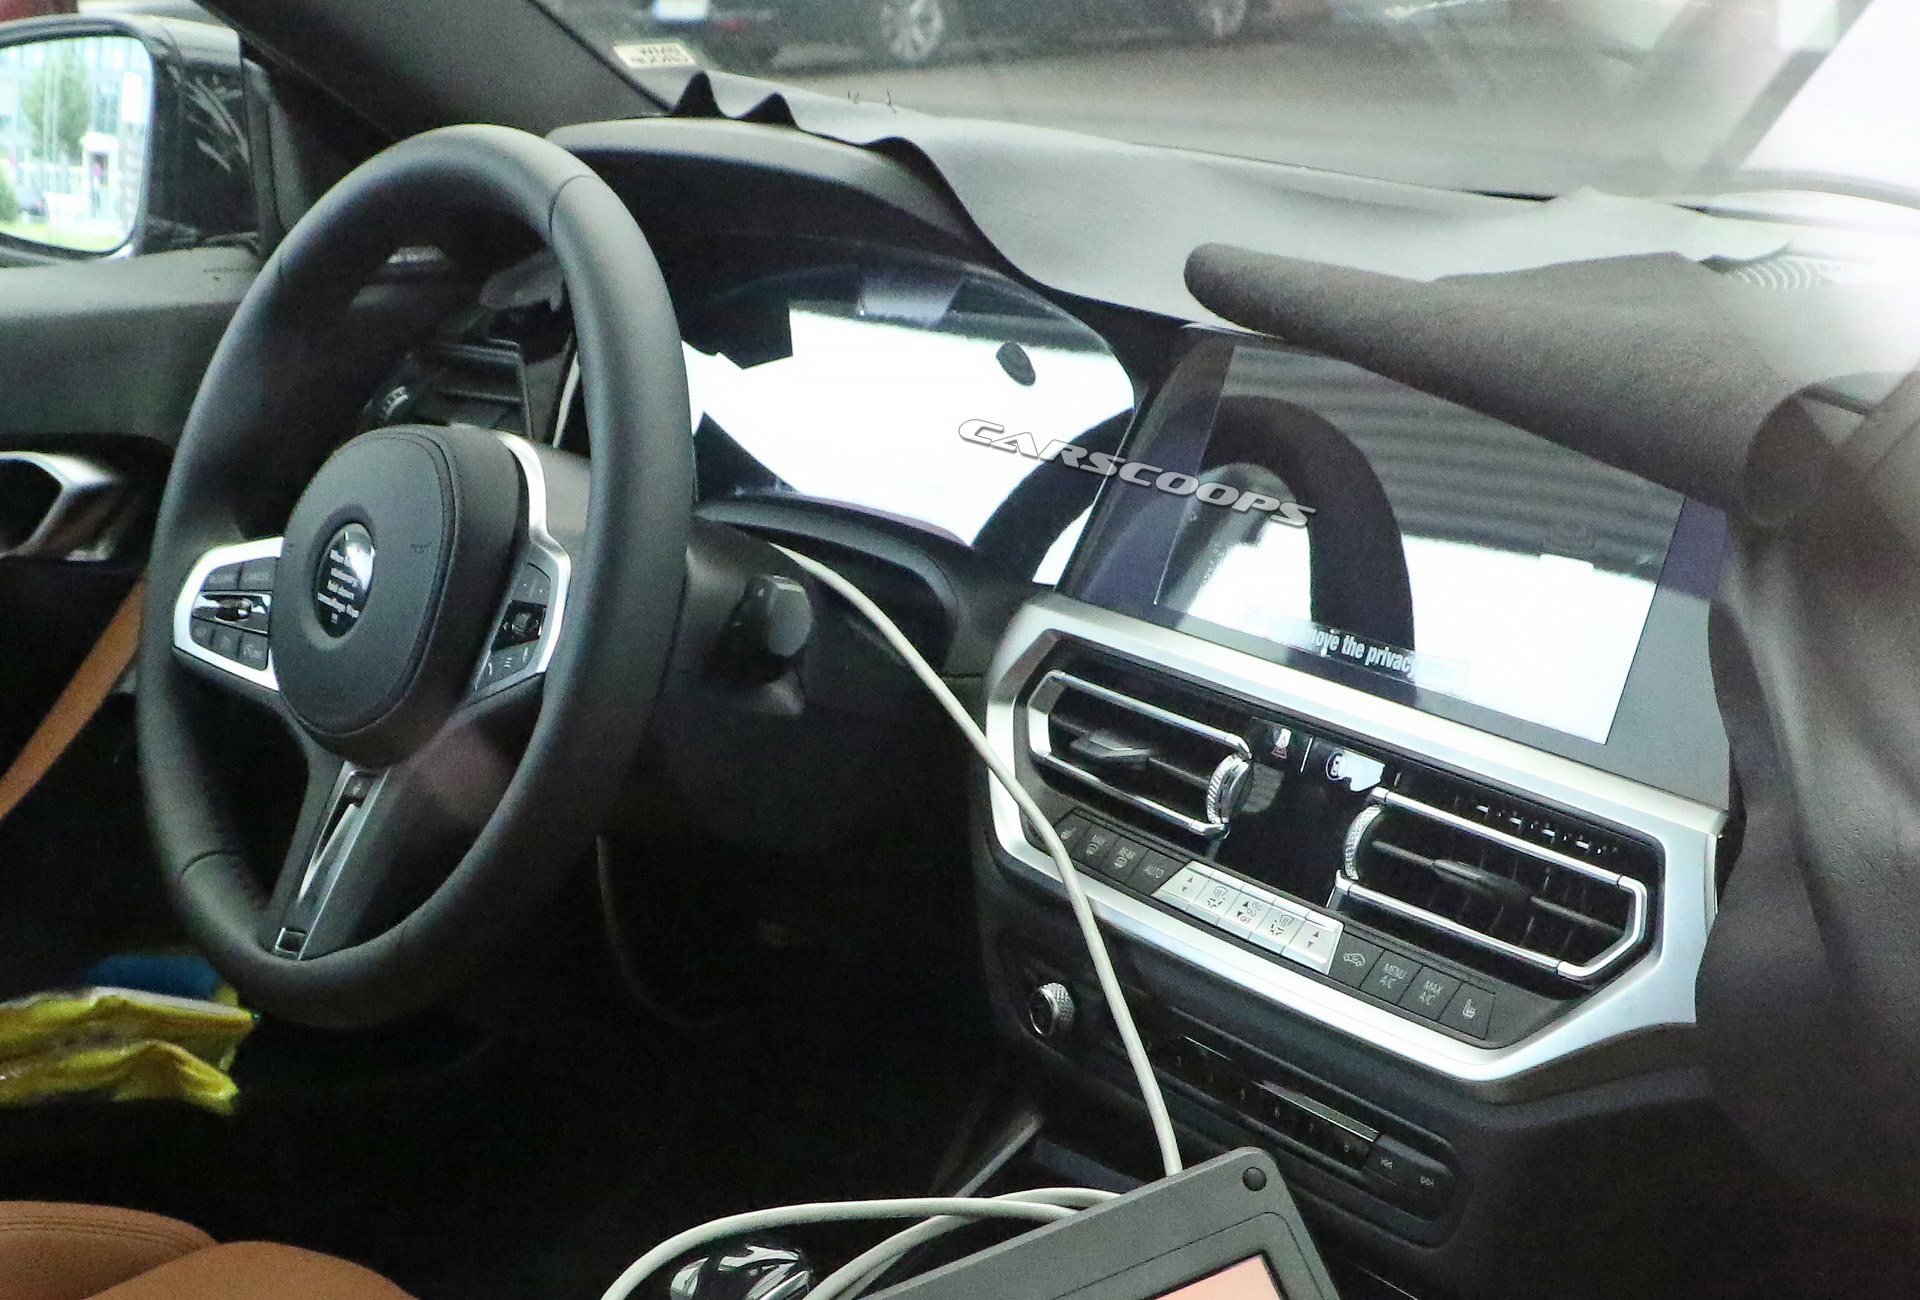 2022 Bmw 2 Series Coupe Getting The Same Interior As The 2 Series Gran Coupe Carscoops